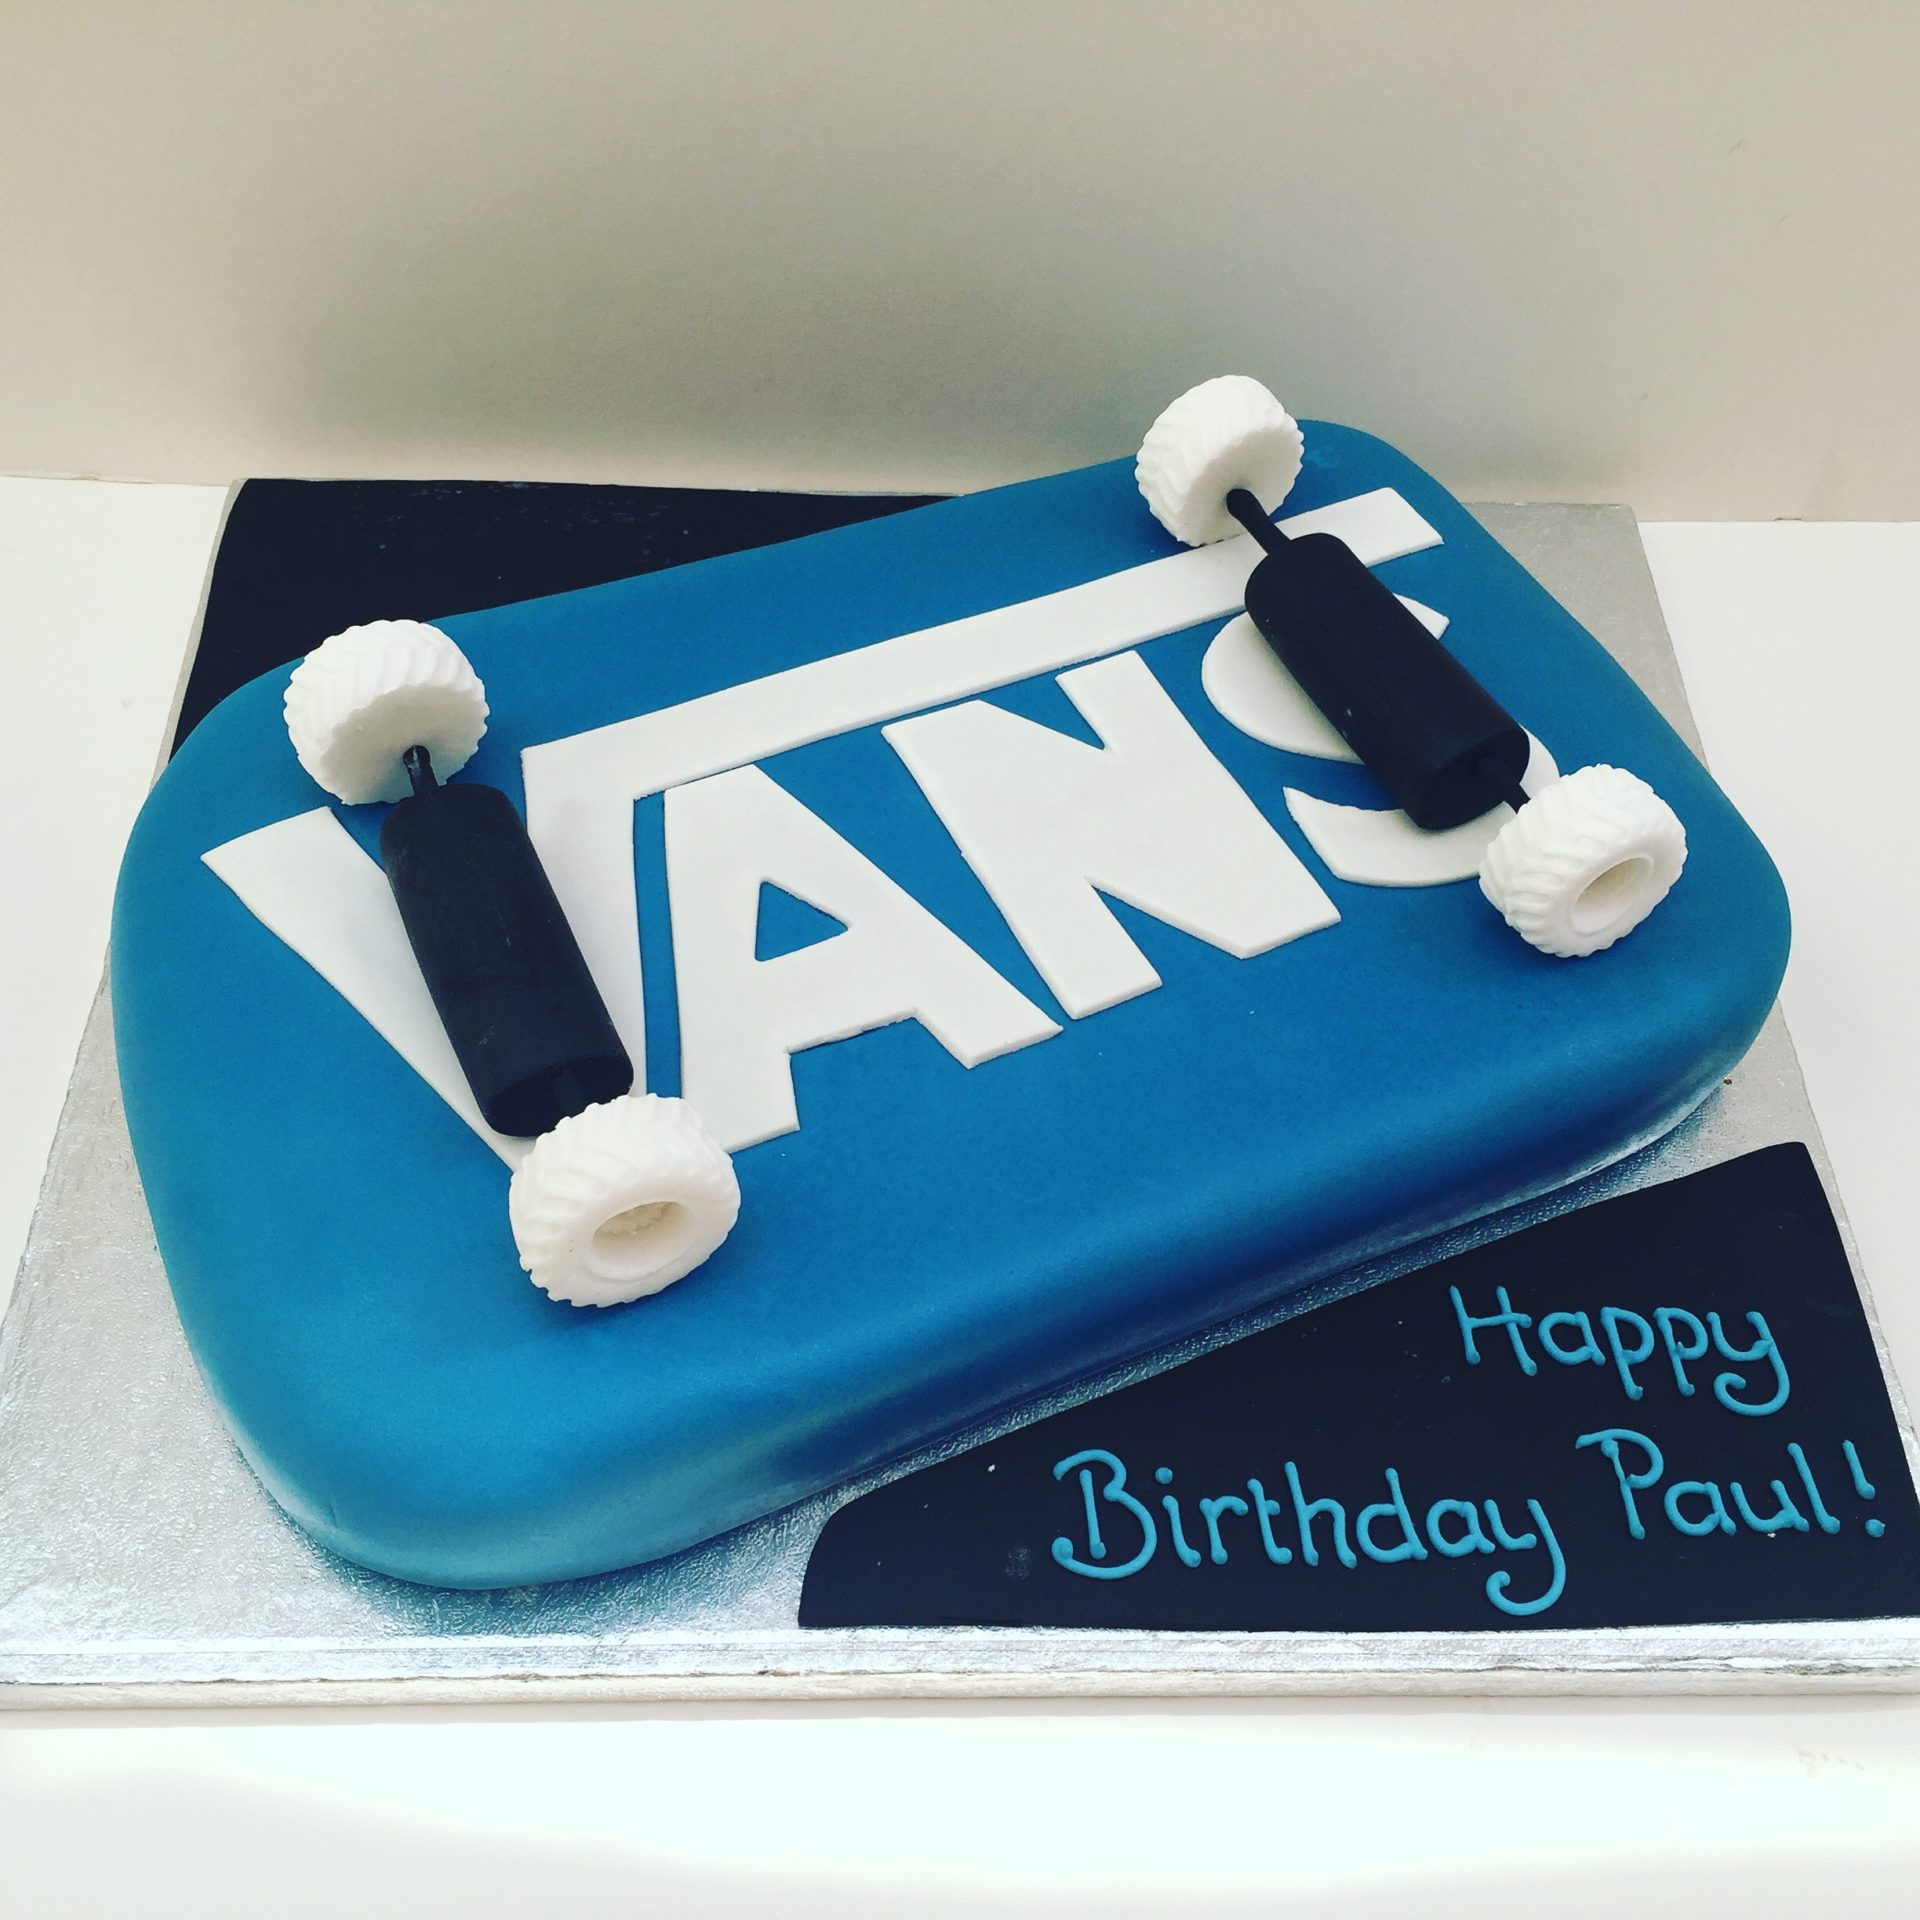 Phenomenal Skateboard Birthday Cake Etoile Bakery Funny Birthday Cards Online Elaedamsfinfo